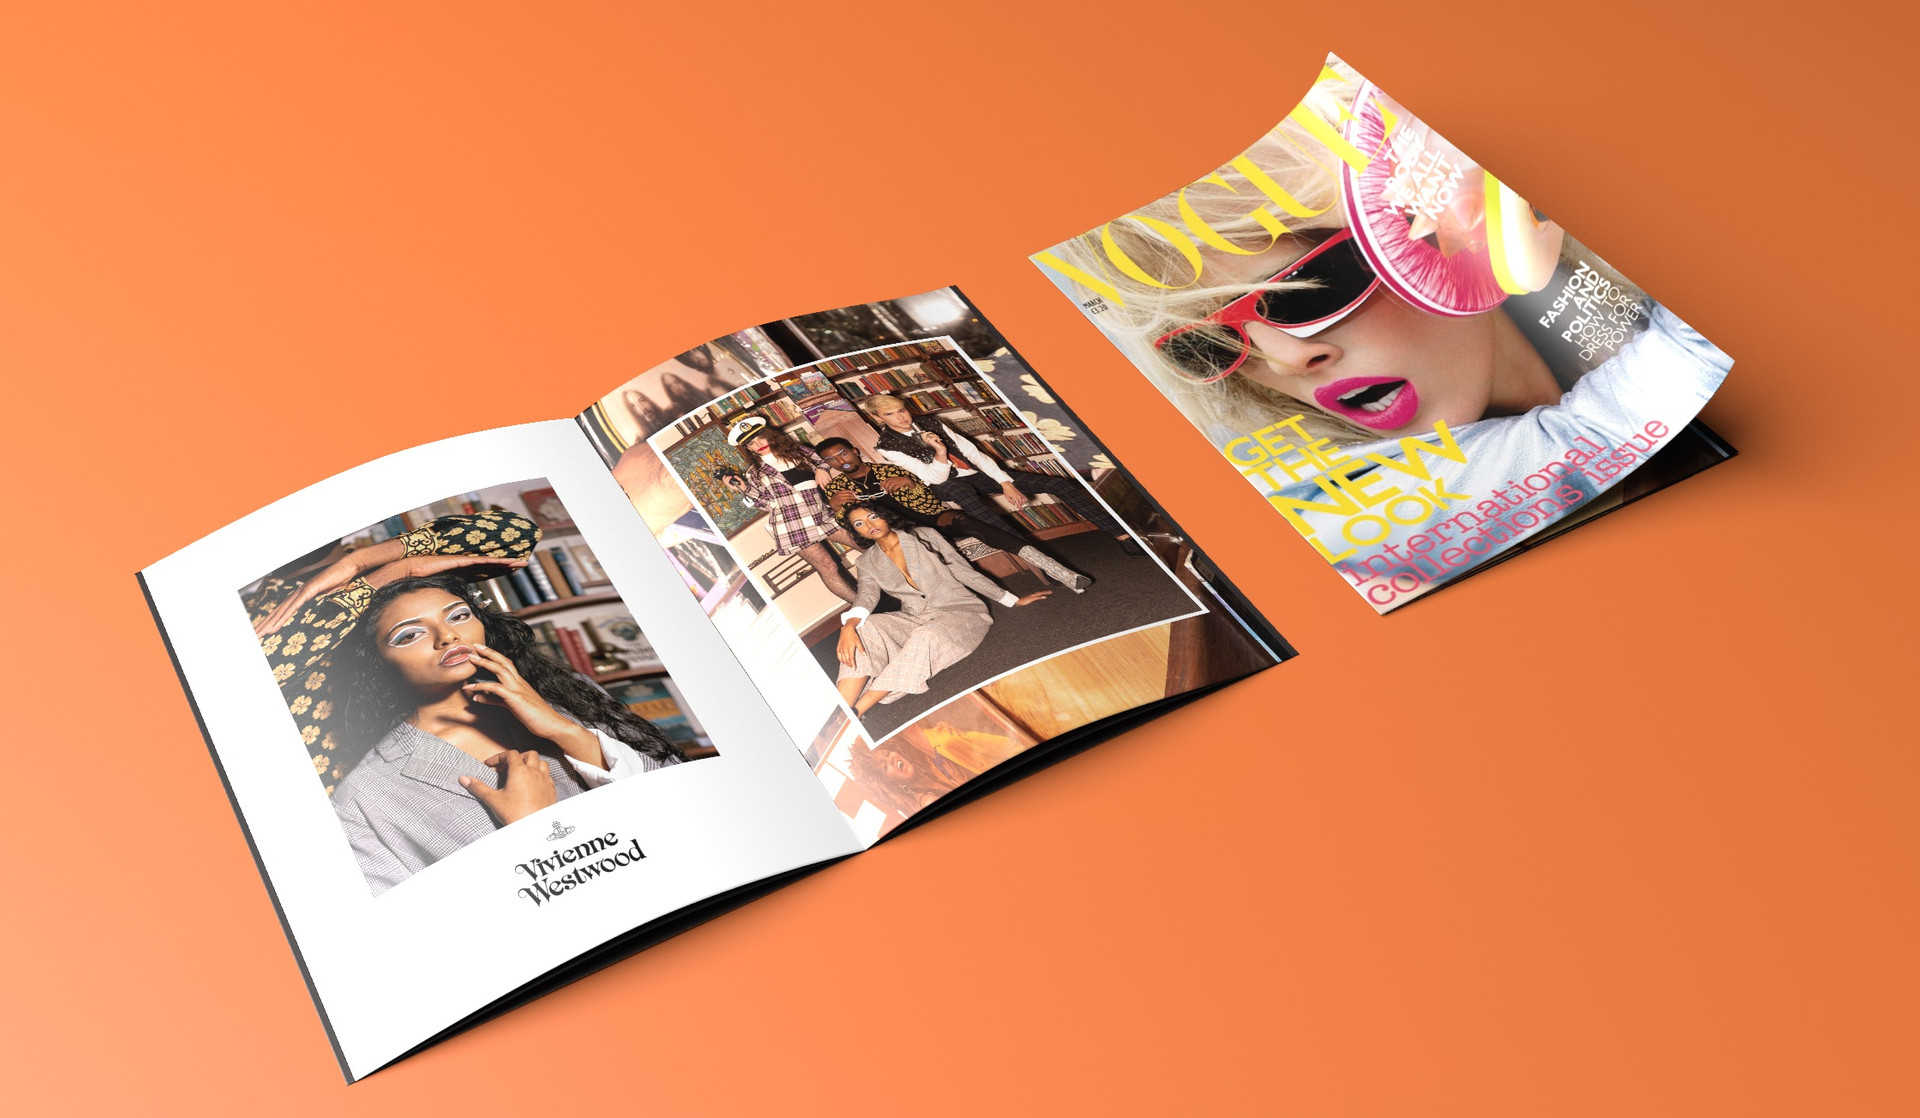 VIVIENNE WESTWOOD MOCK-UP MAGAZINE